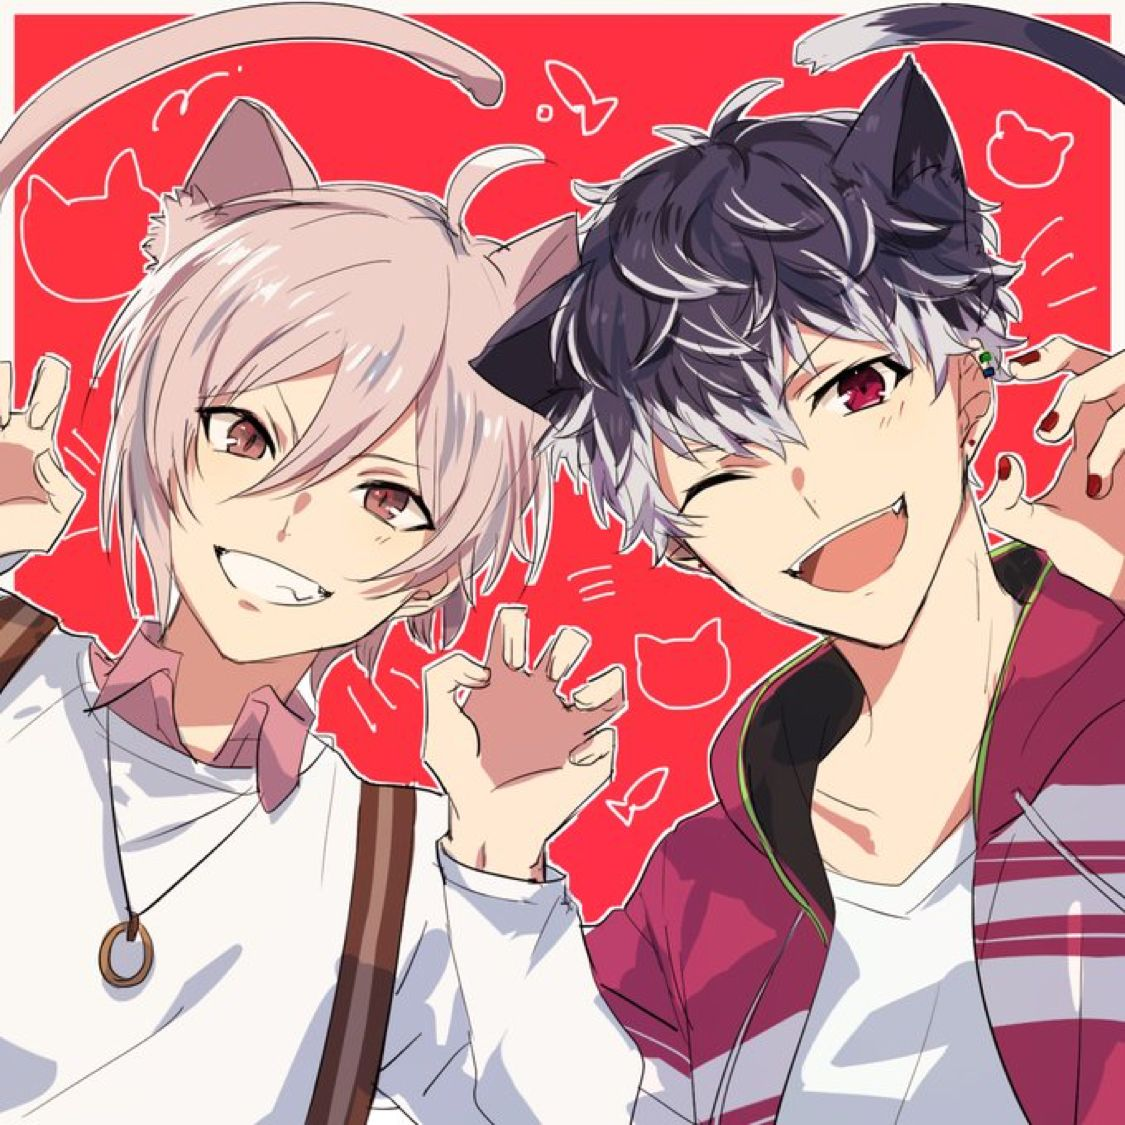 Pin by Cheezzy ˏ₍•ɞ•₎ˎ on Images(ΦωΦ)   Anime, Anime cat